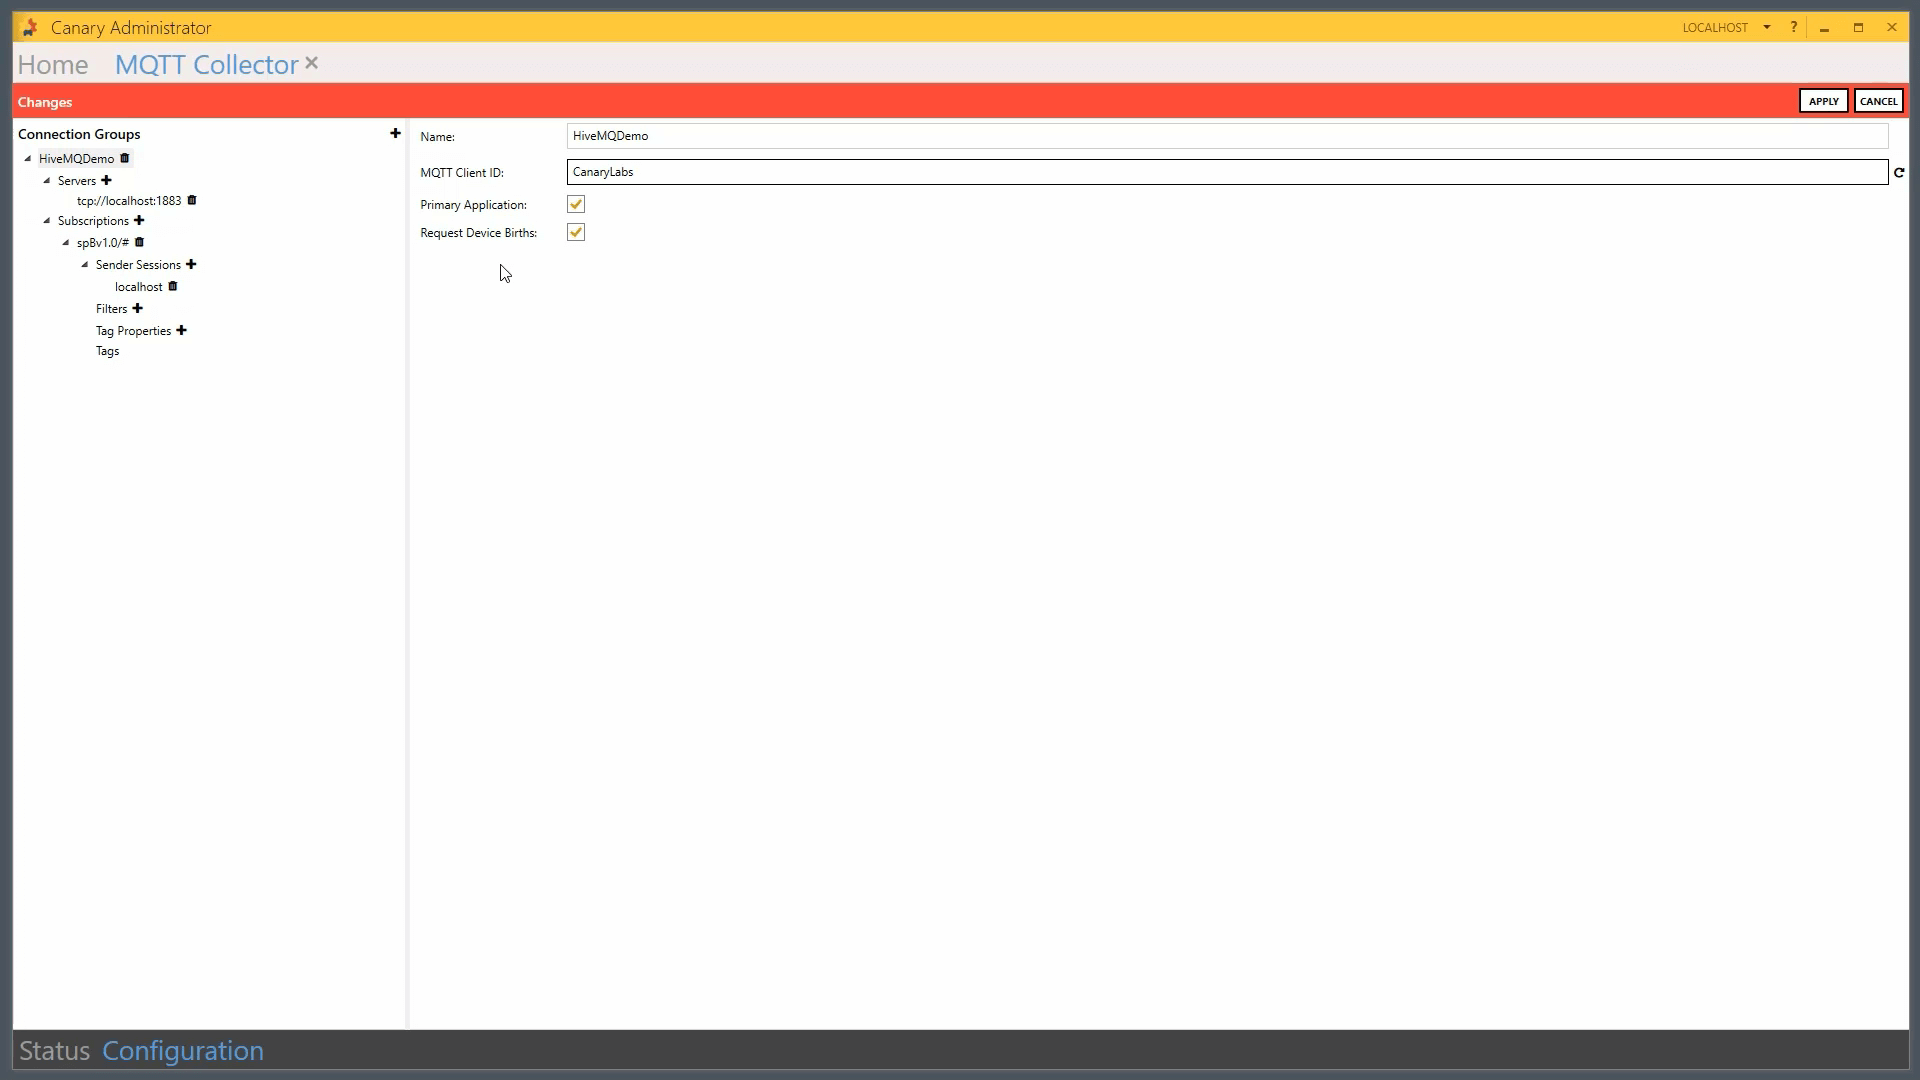 Configuring Canary Historian to Receive